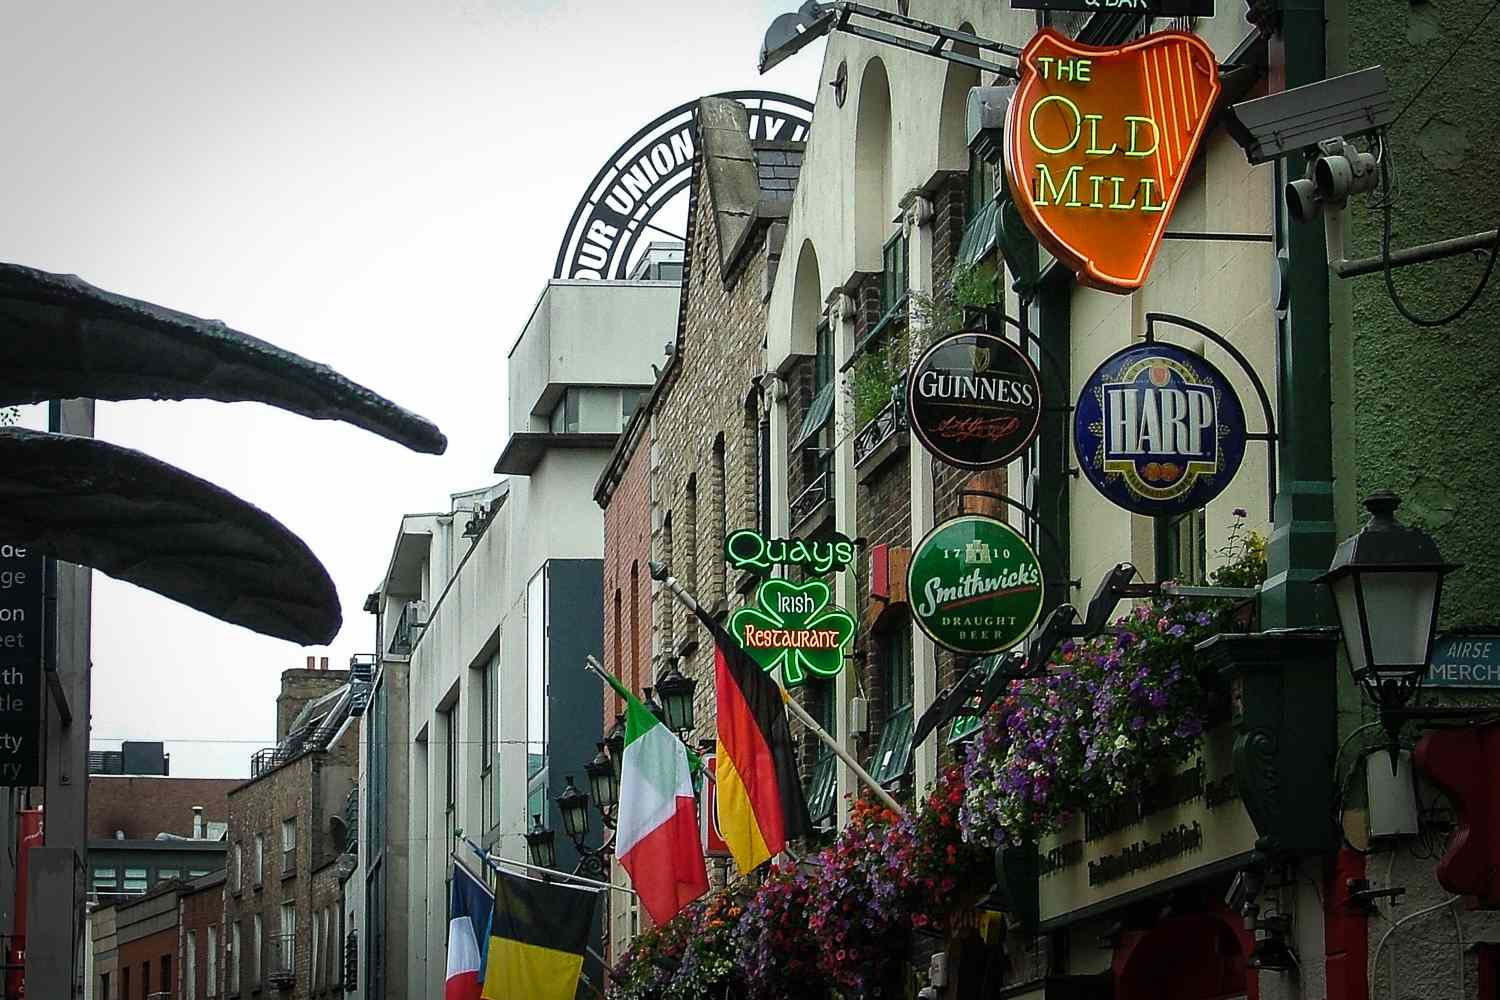 Dublin's Temple Bar - might disappoint, if your expectations are set too high